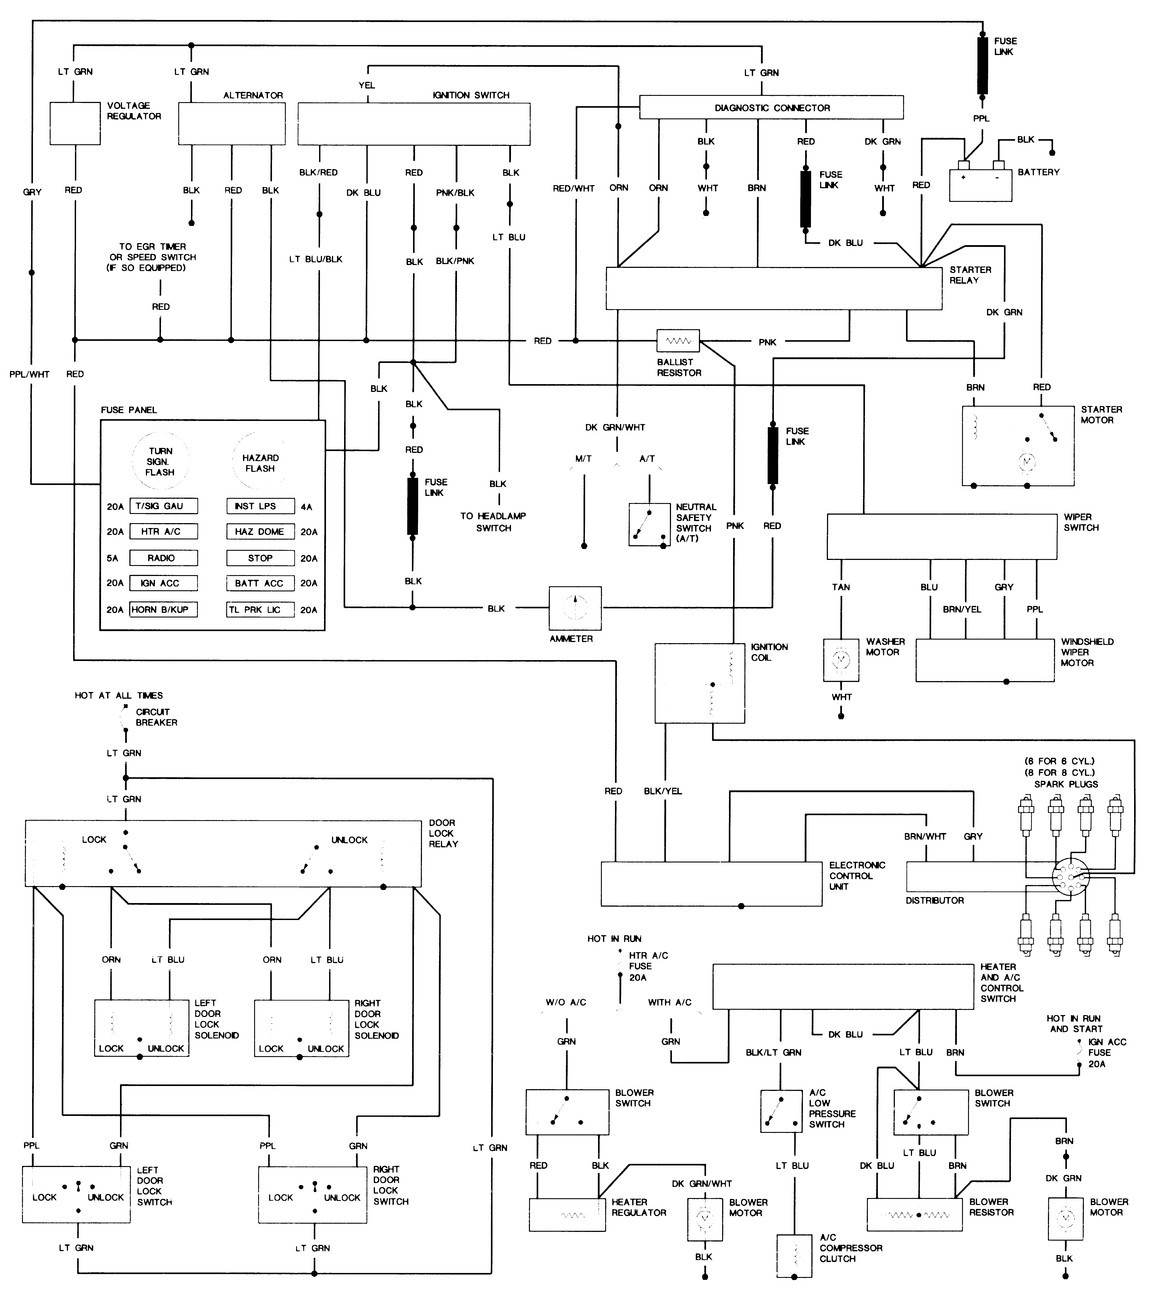 Ford 8n Distributor Diagram : Ford n distributor wiring diagram fuse box